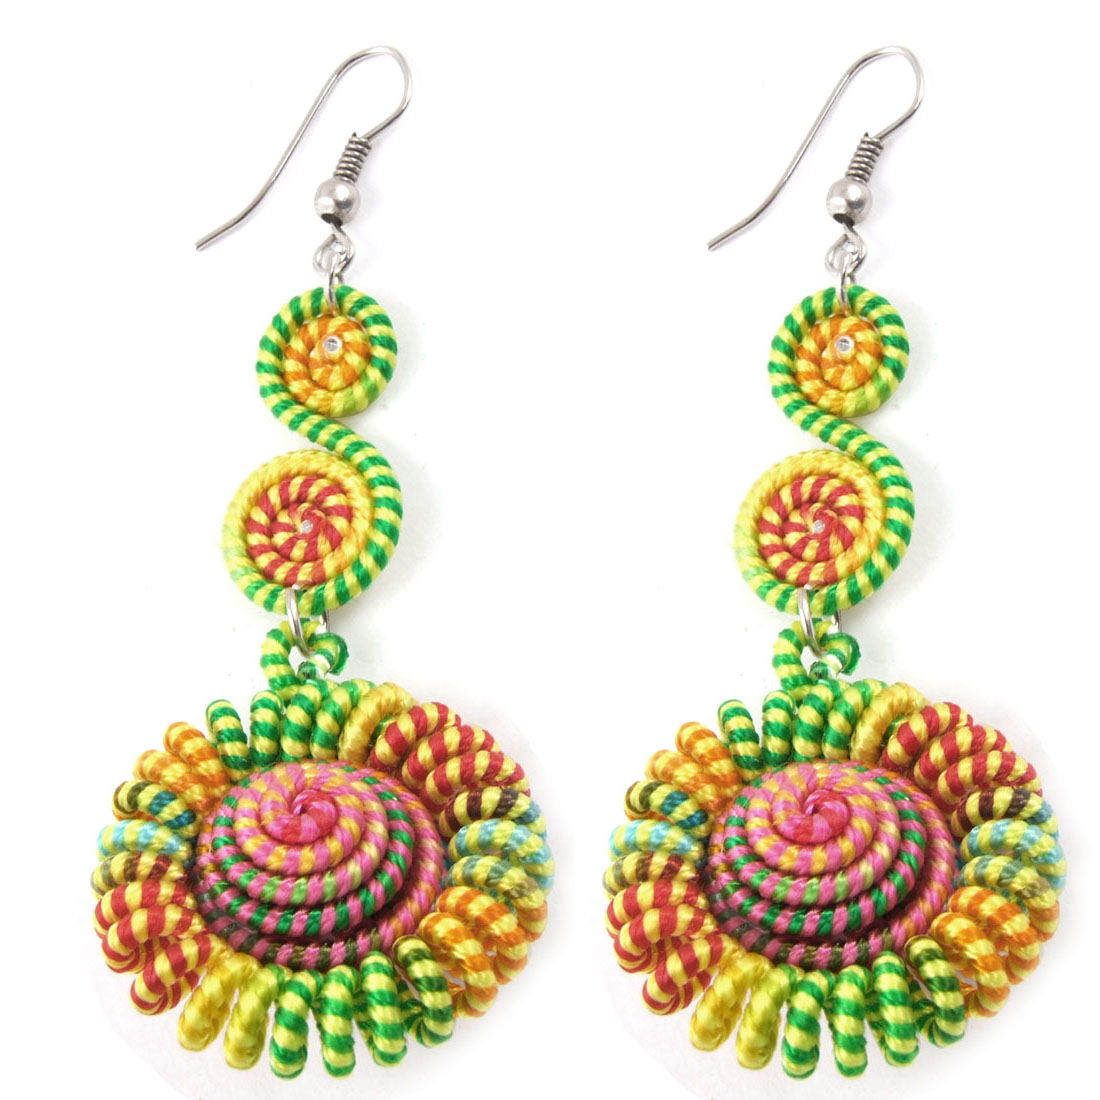 Women Colorful Cord Seashell Detailing Hand Craft Earrings Pair